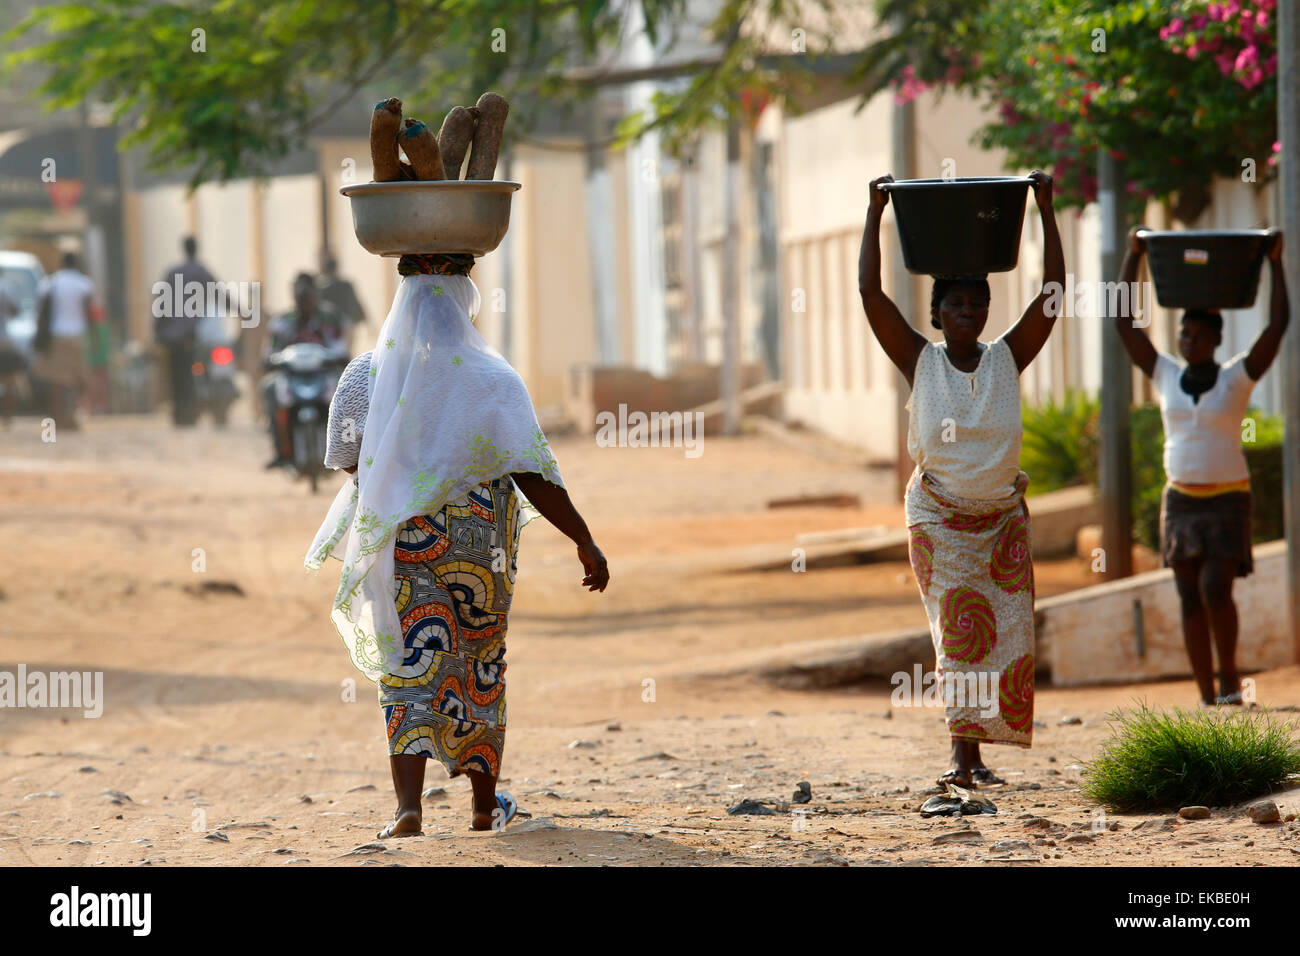 African women carrying large bowls on their heads, Lome, Togo, West Africa, Africa - Stock Image